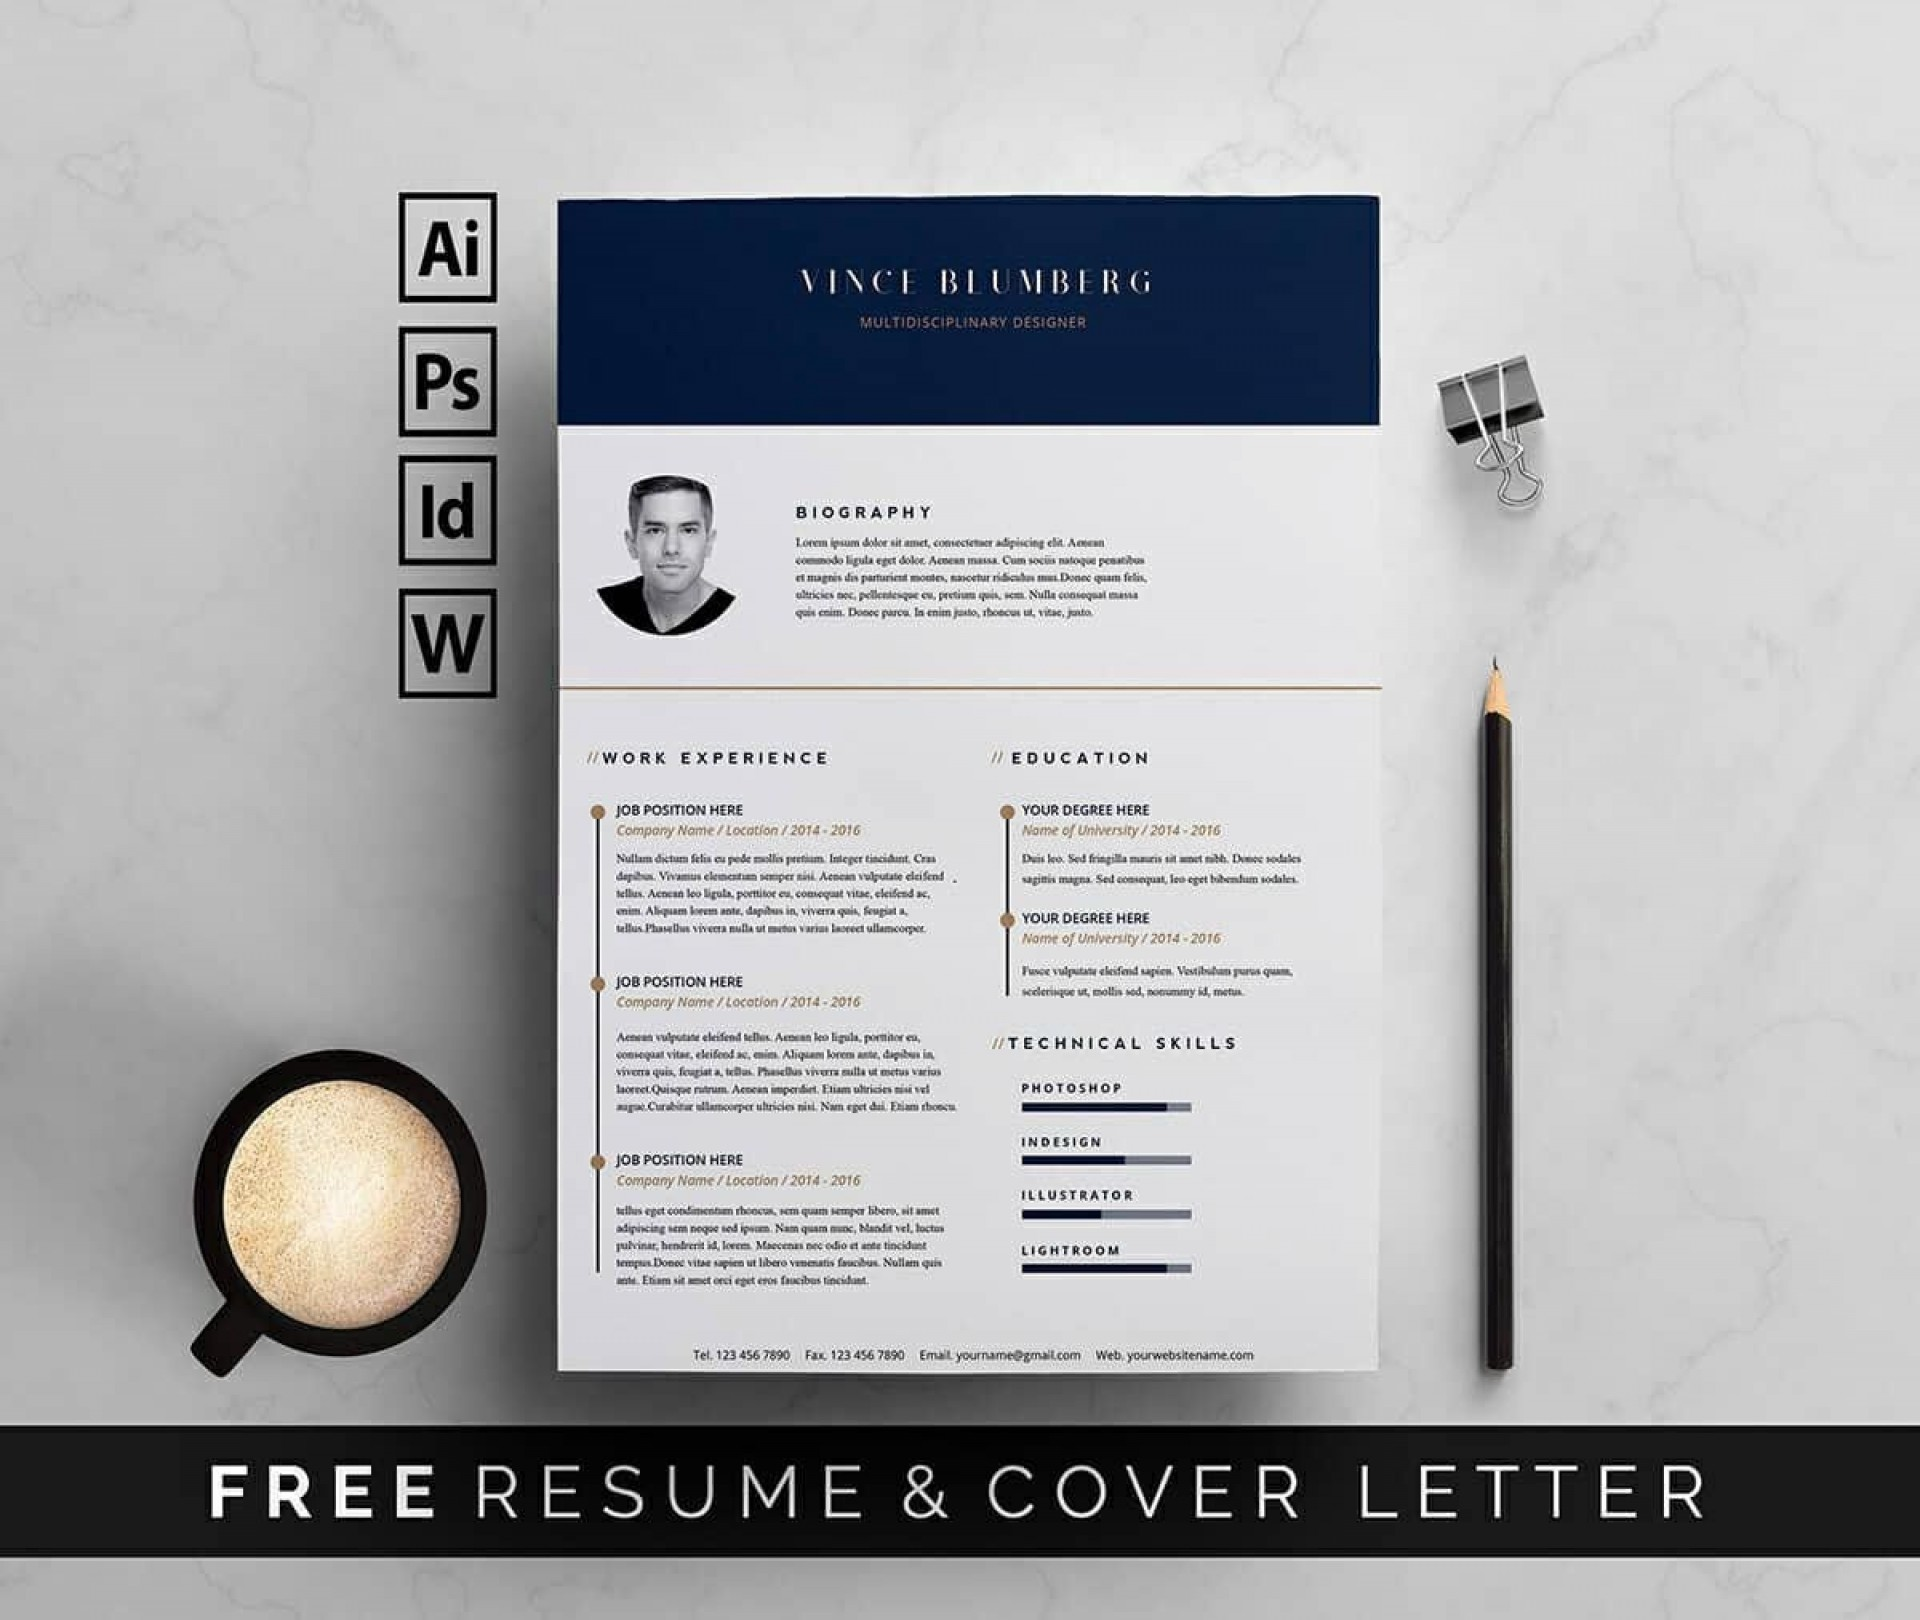 008 Astounding Resume Template Free Word Photo  Download Document 2020 For Fresher1920